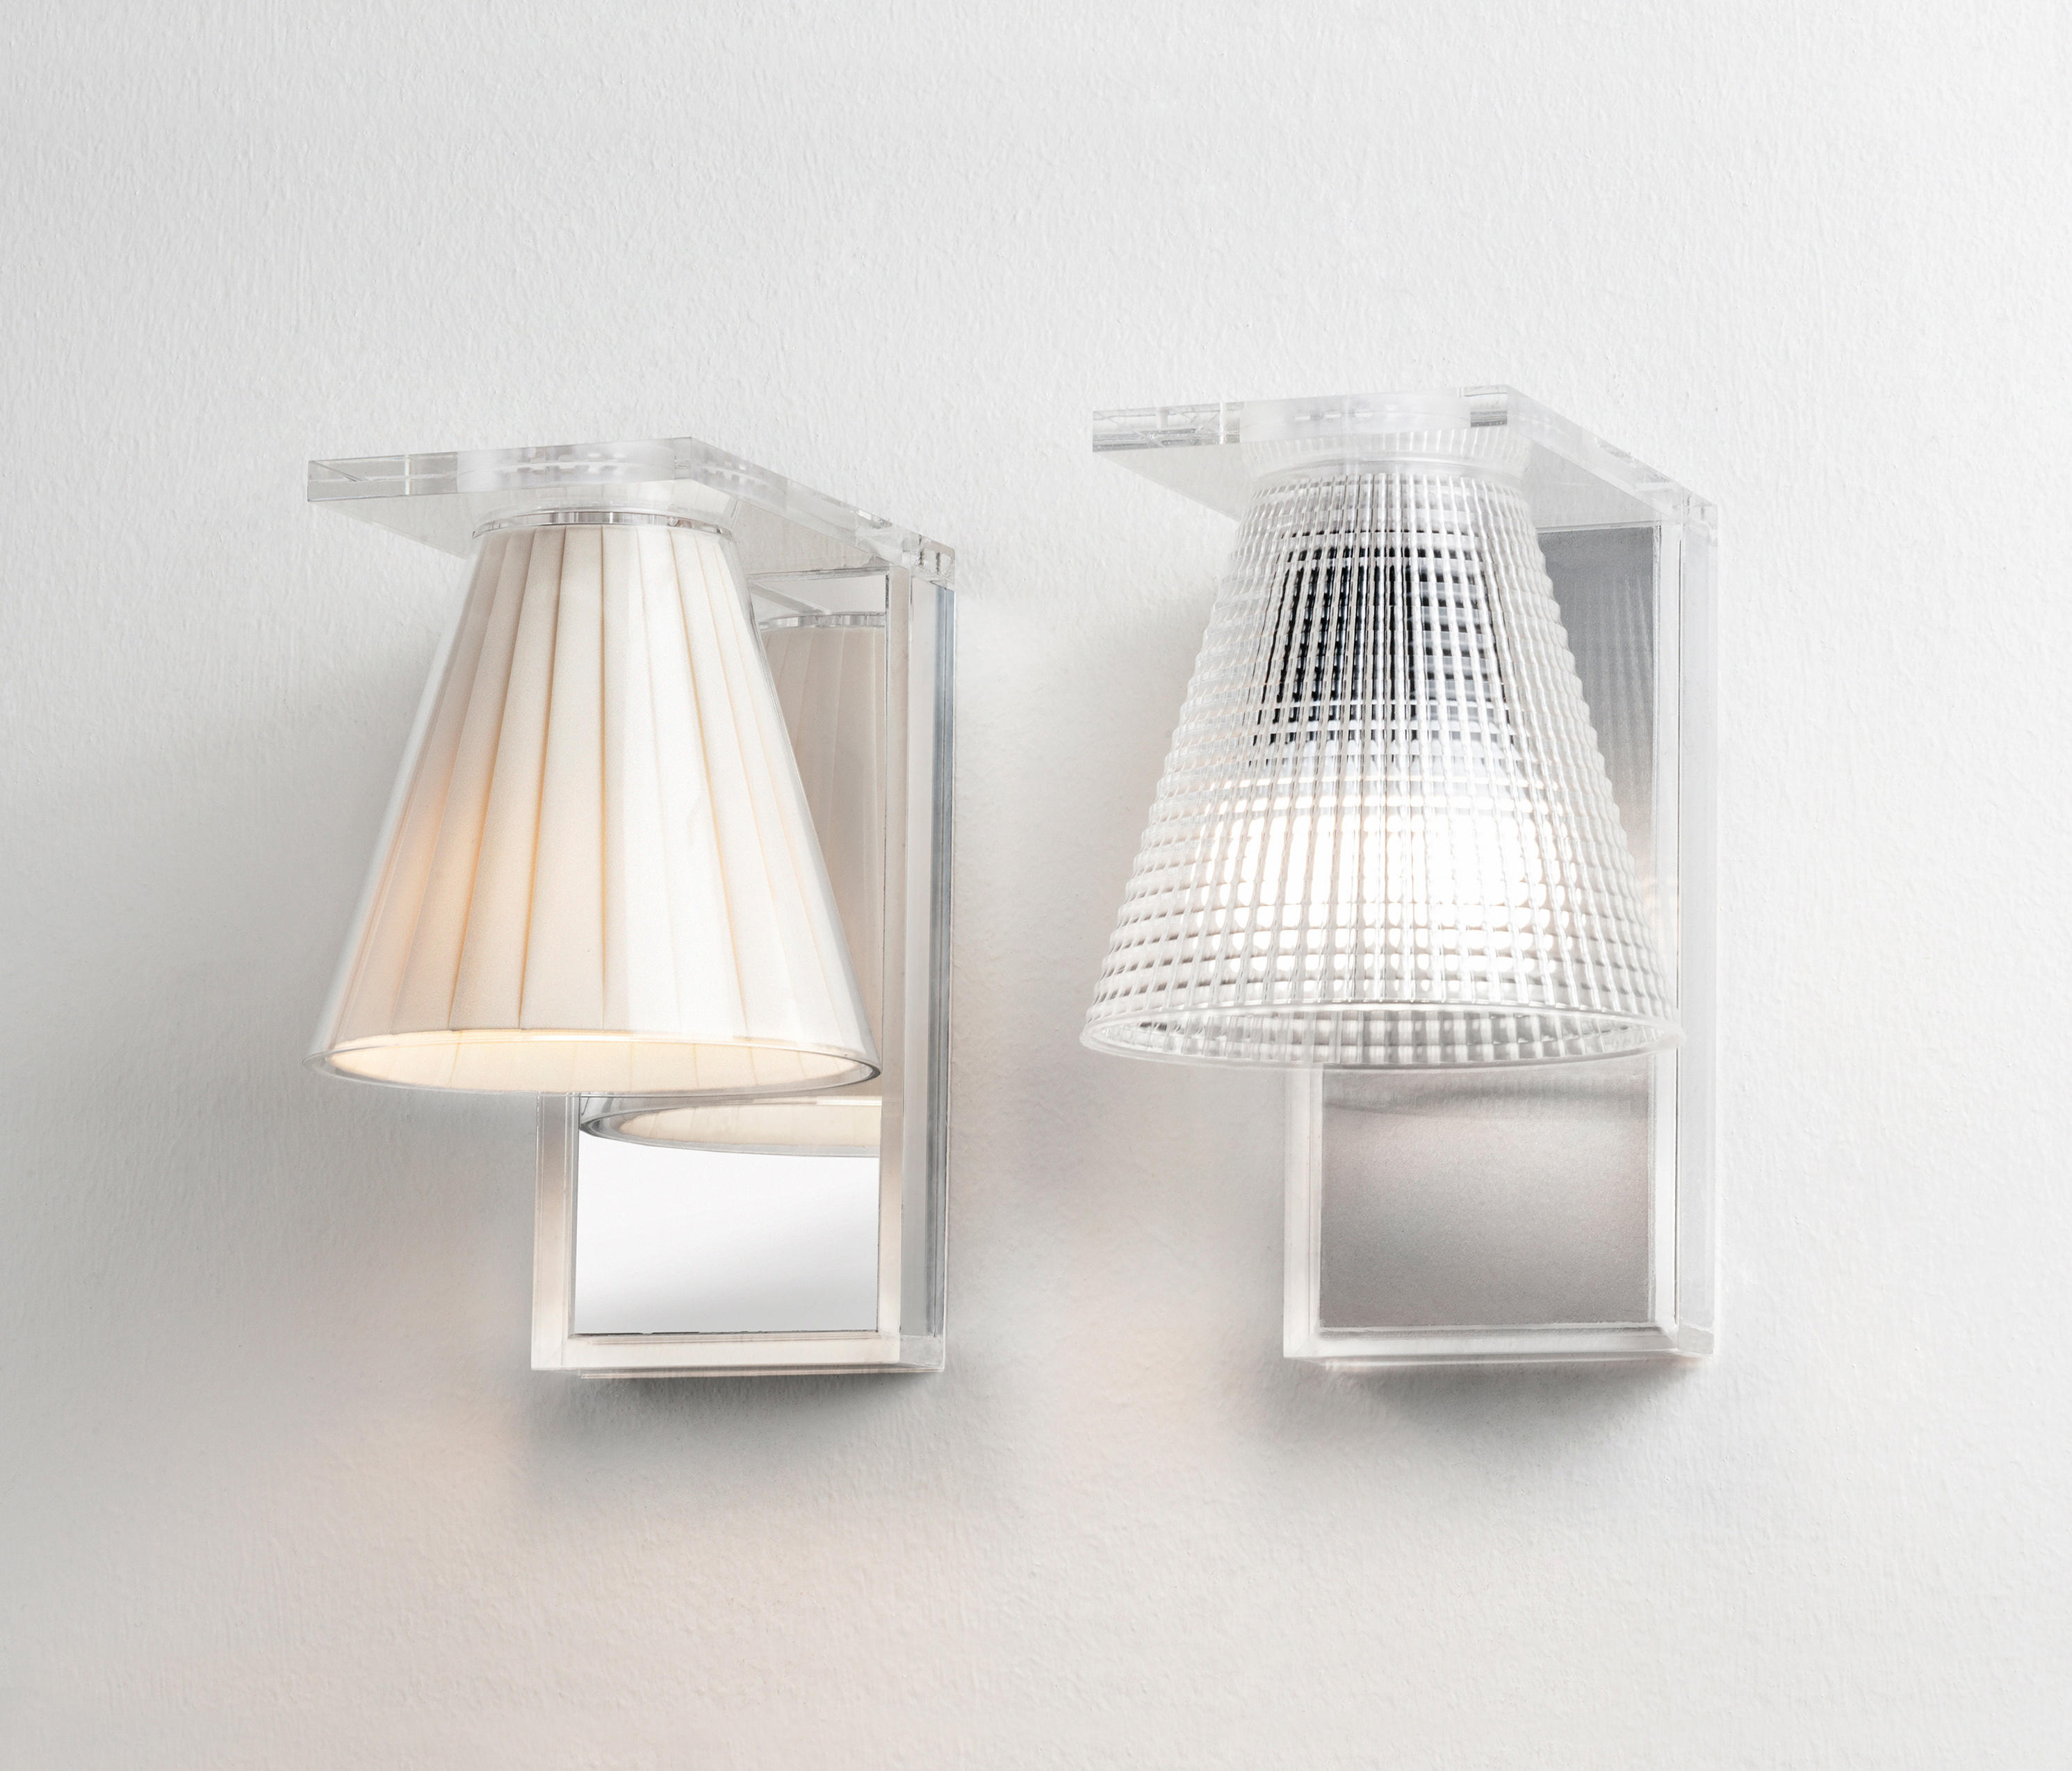 light air general lighting from kartell architonic. Black Bedroom Furniture Sets. Home Design Ideas